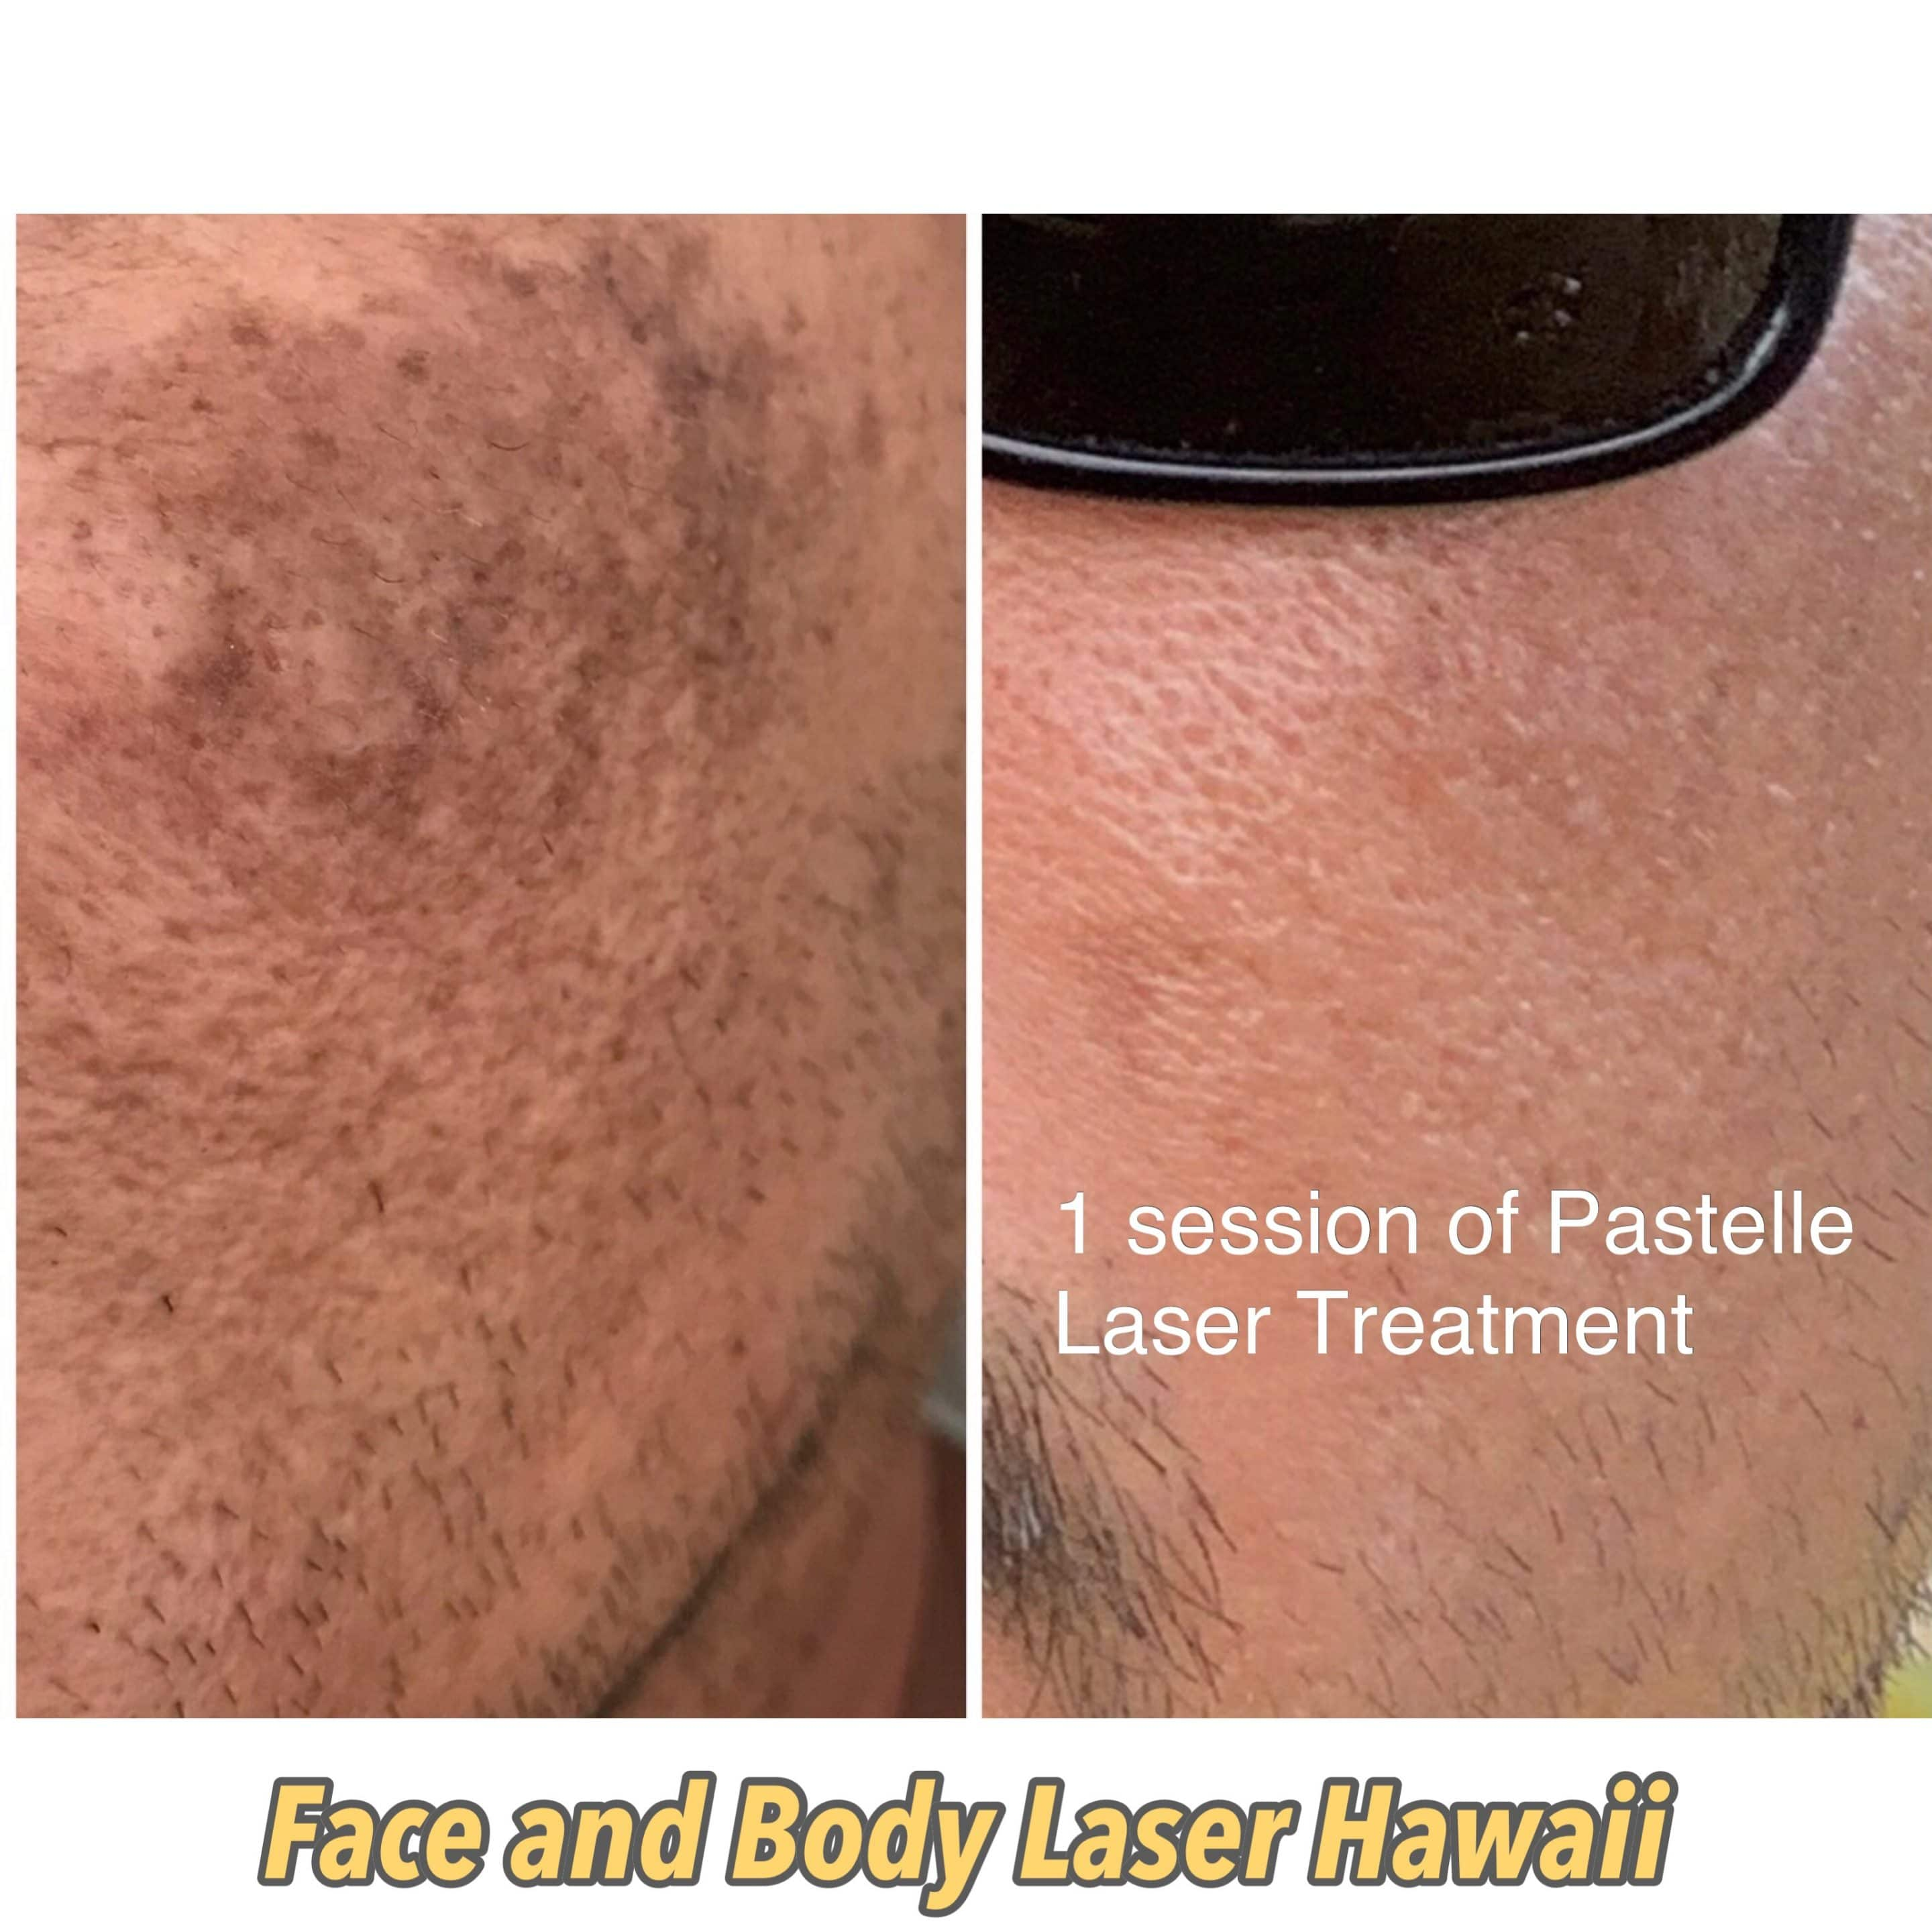 1 session of Pastelle Laser Treatment